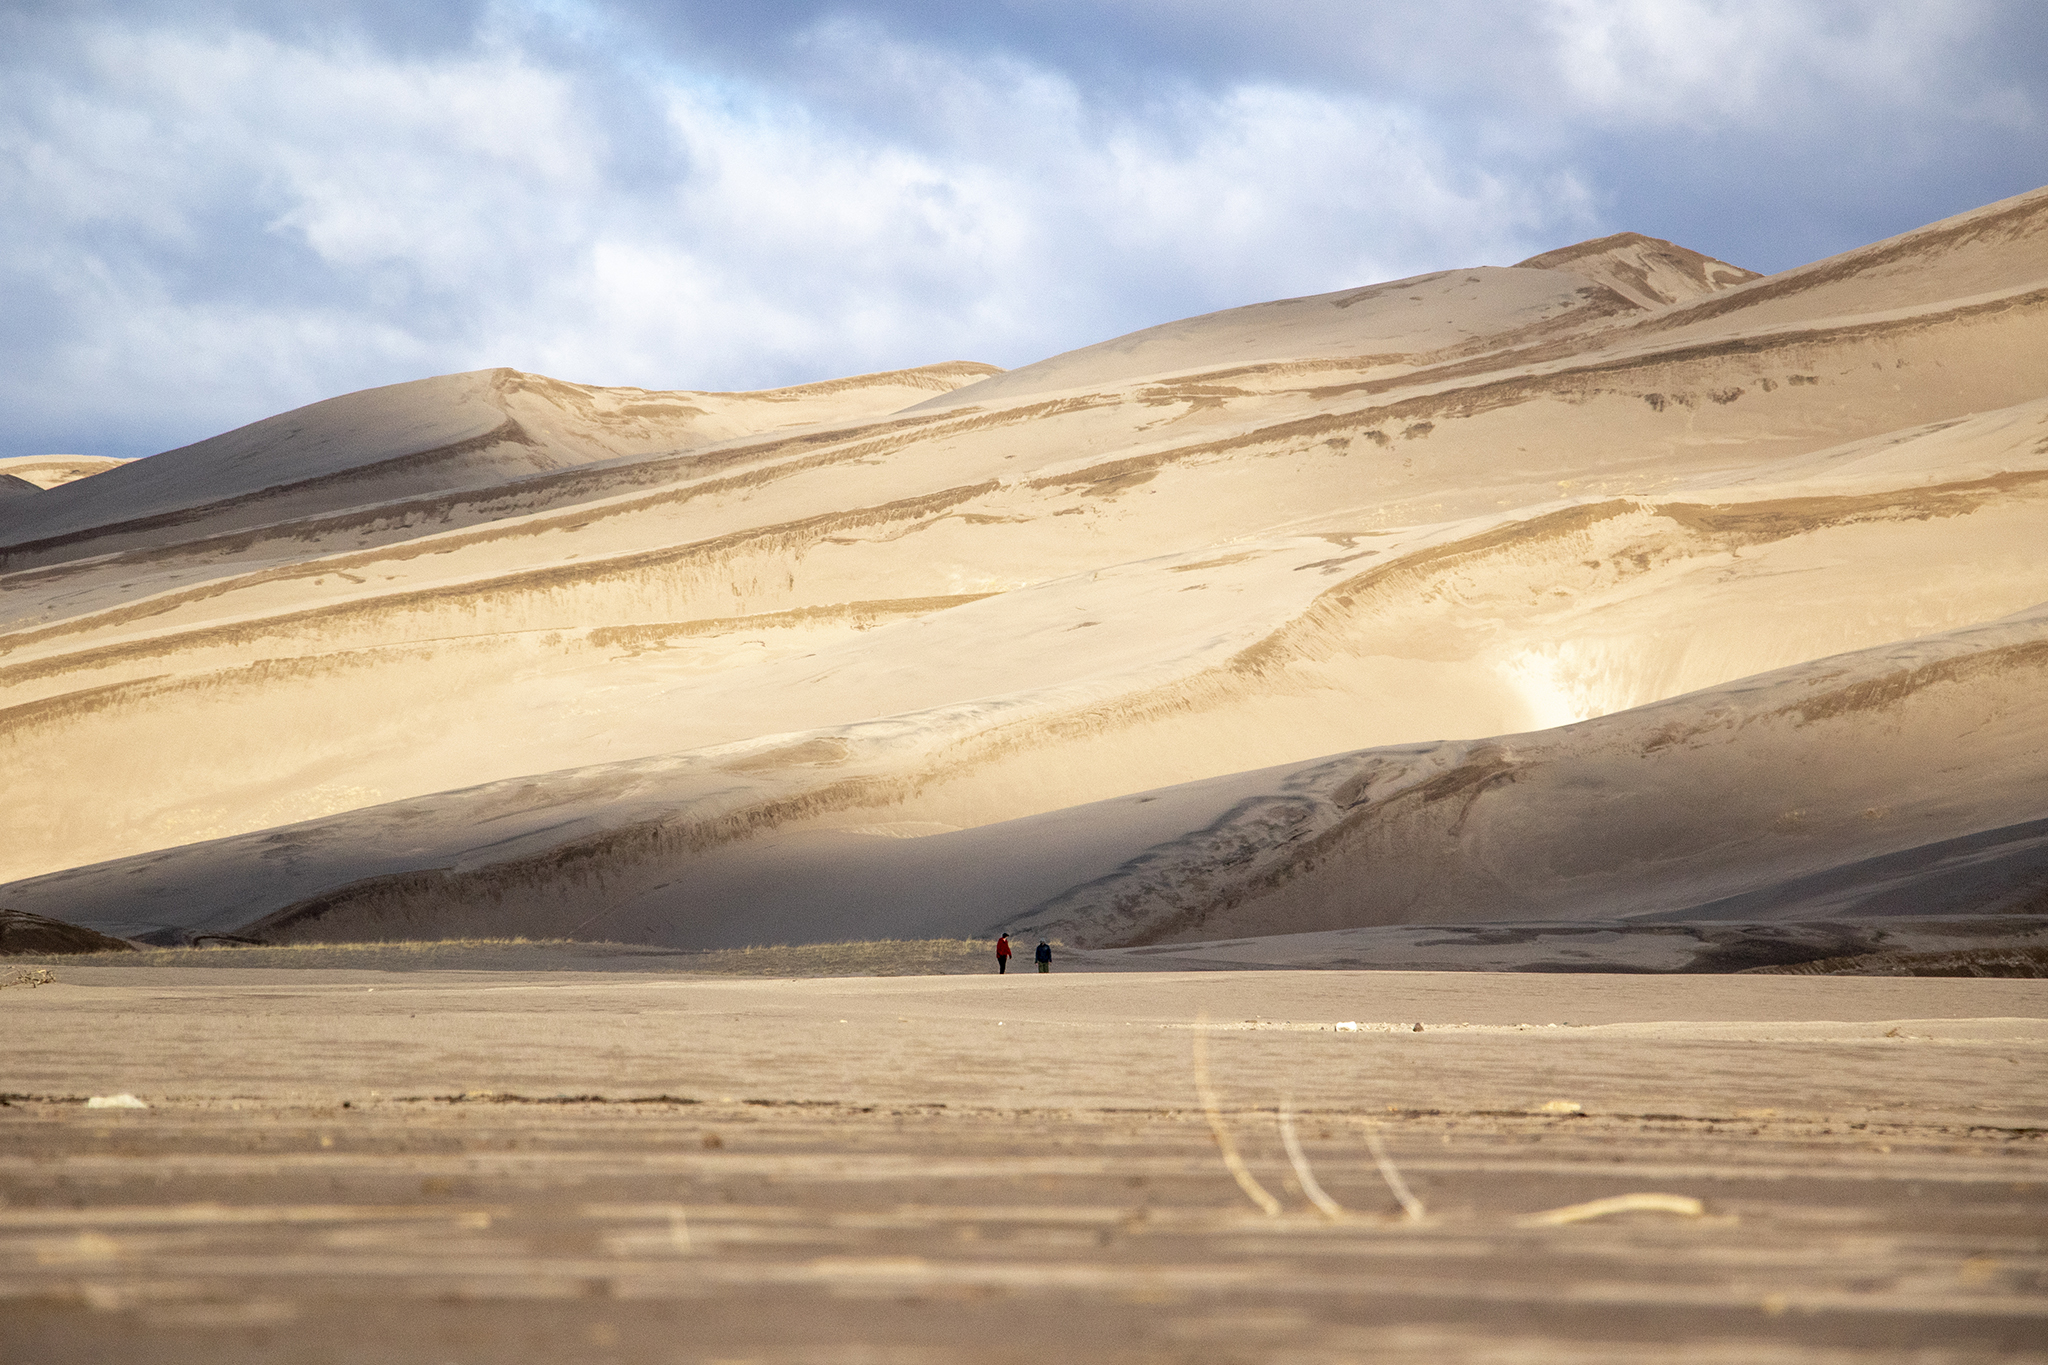 A couple of people walk at the Great Sand Dunes National Park on April 13, 2019, during a student robotics challenge.